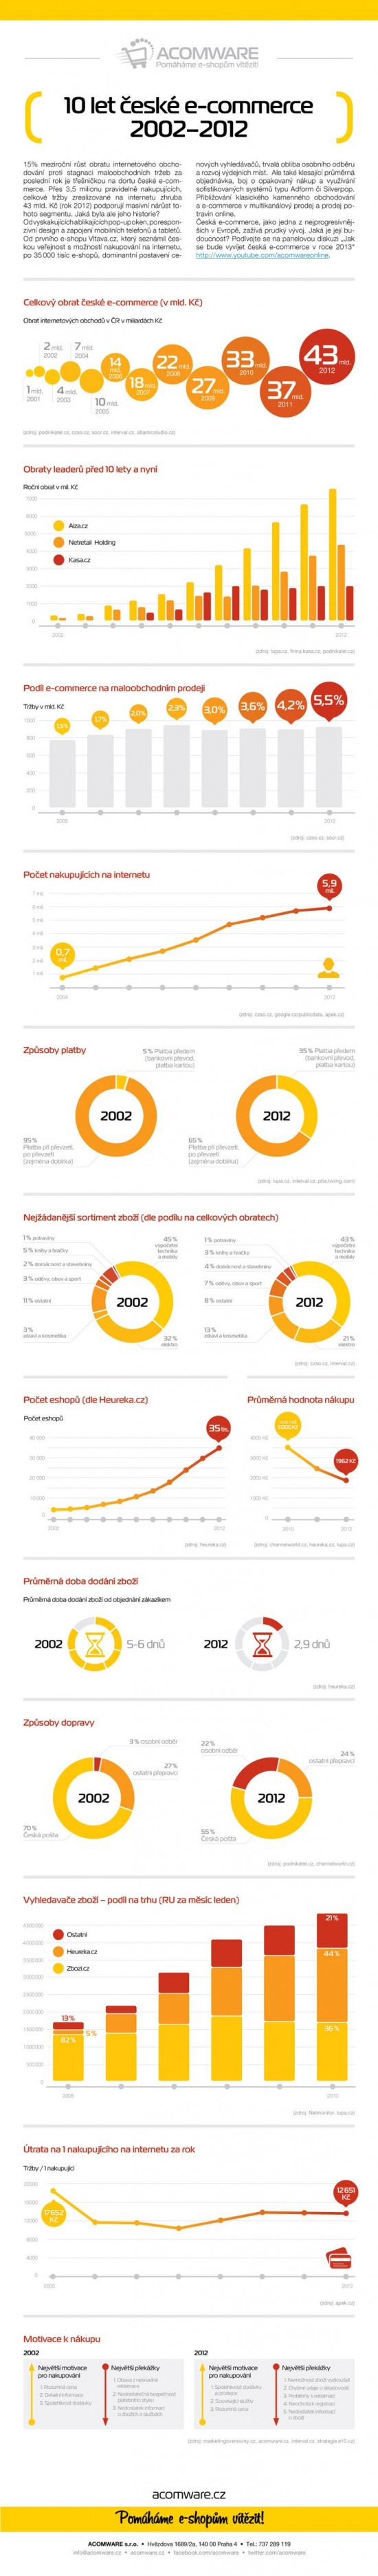 10 let ceske e-commerce 2002-2012 - infografika